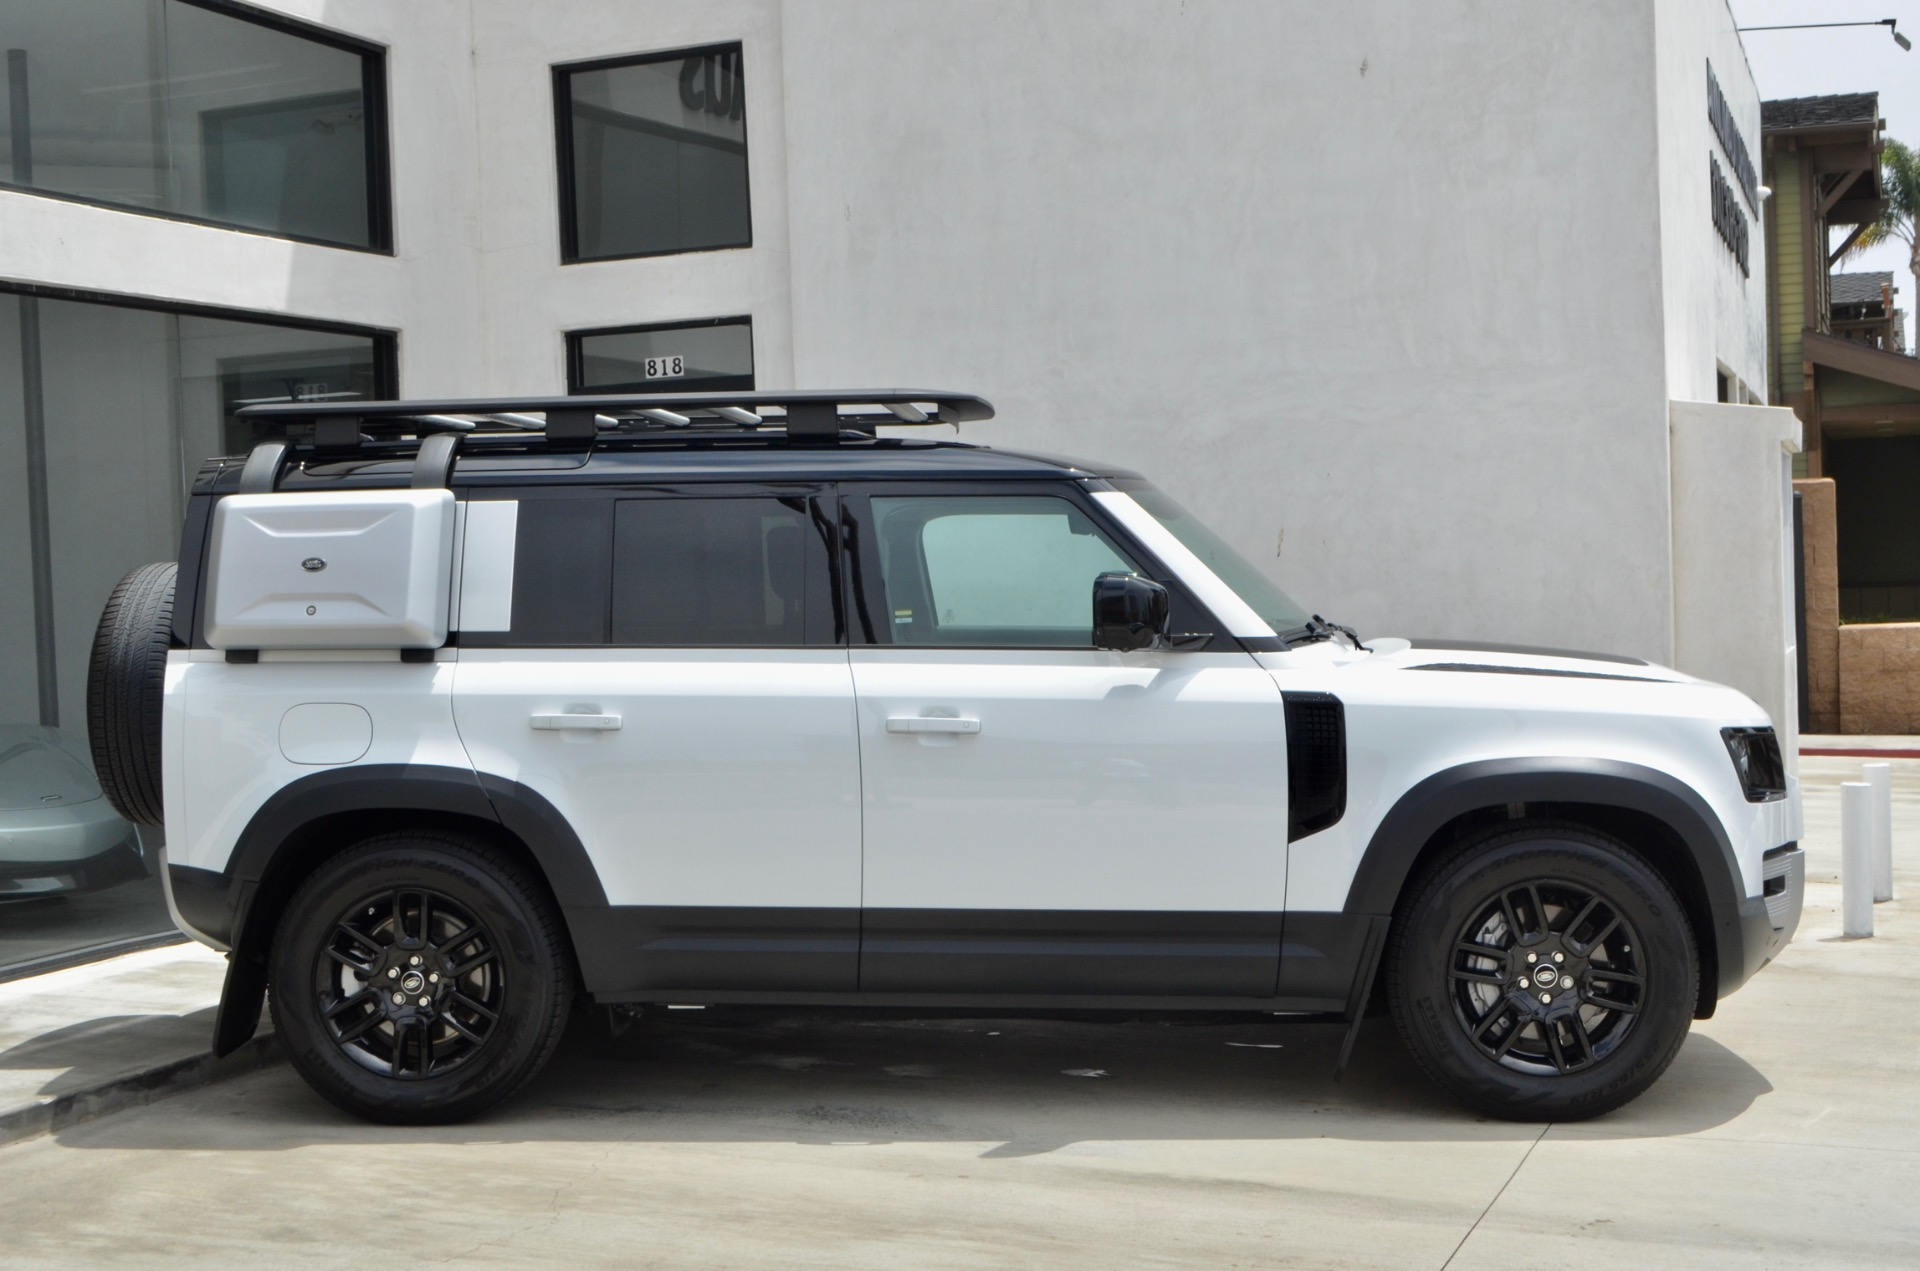 Used-2020-Land-Rover-Defender-110-HSE